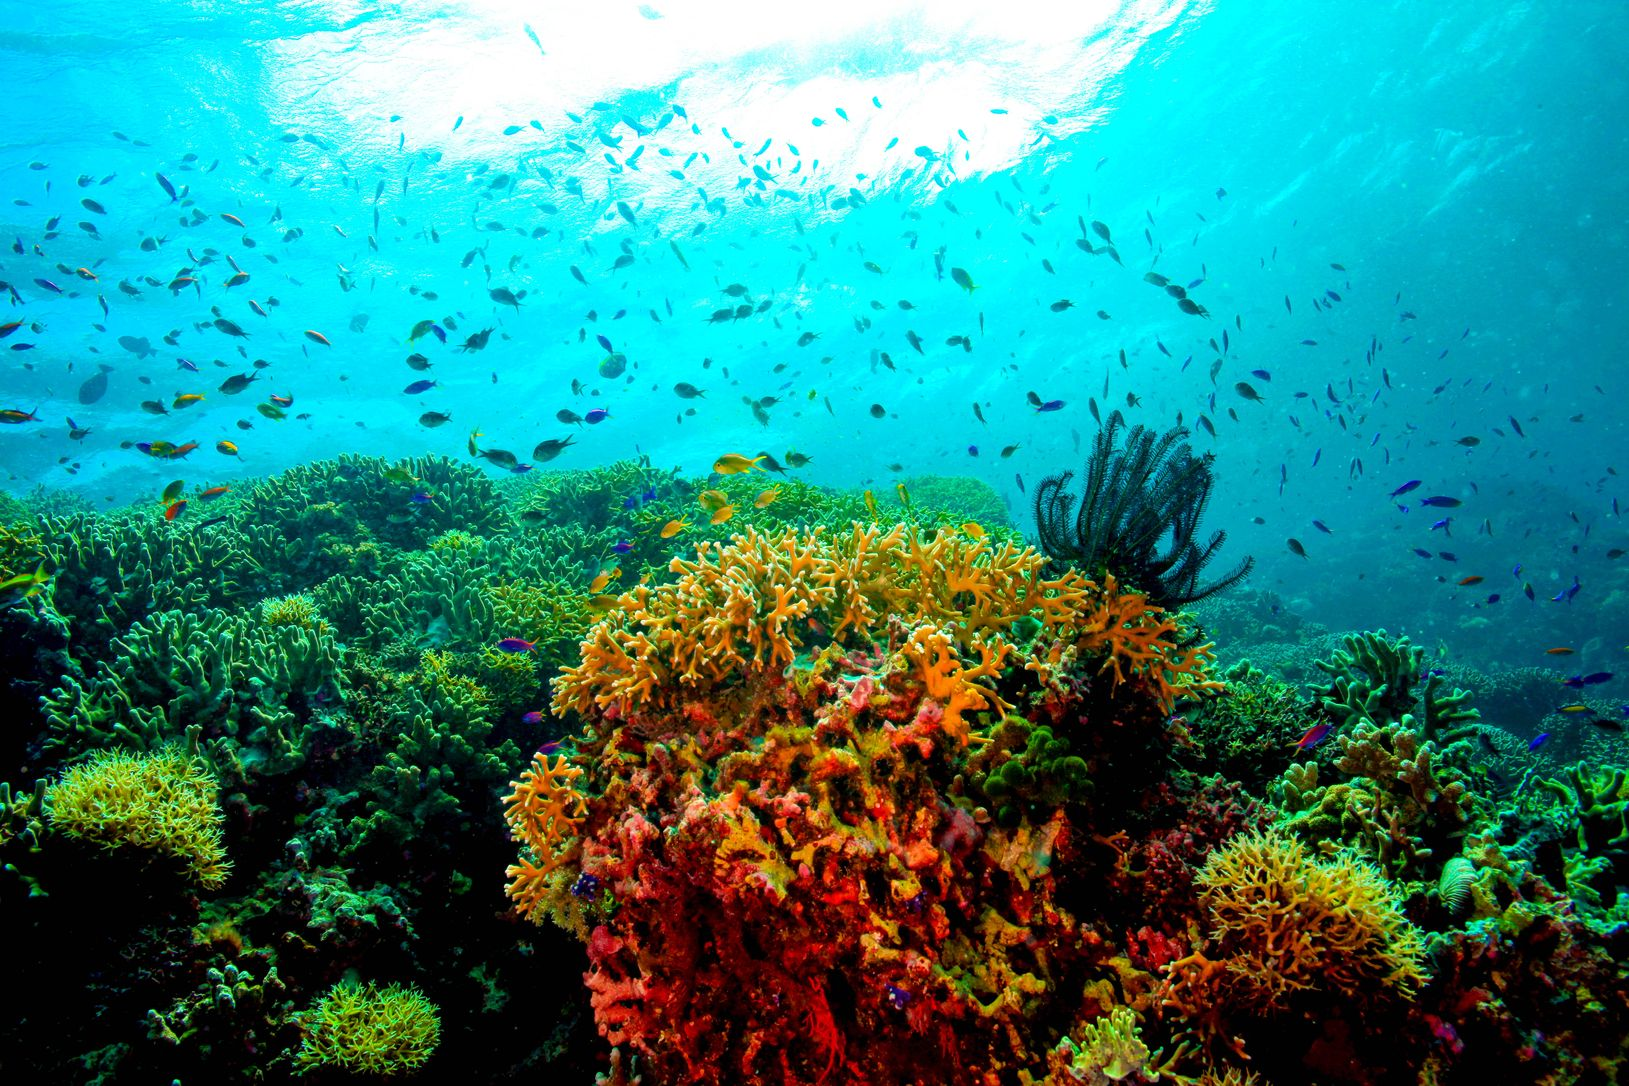 Colorful fishes and coral reefs in Tubbataha Reefs, one of the best places to visit in the Philippines